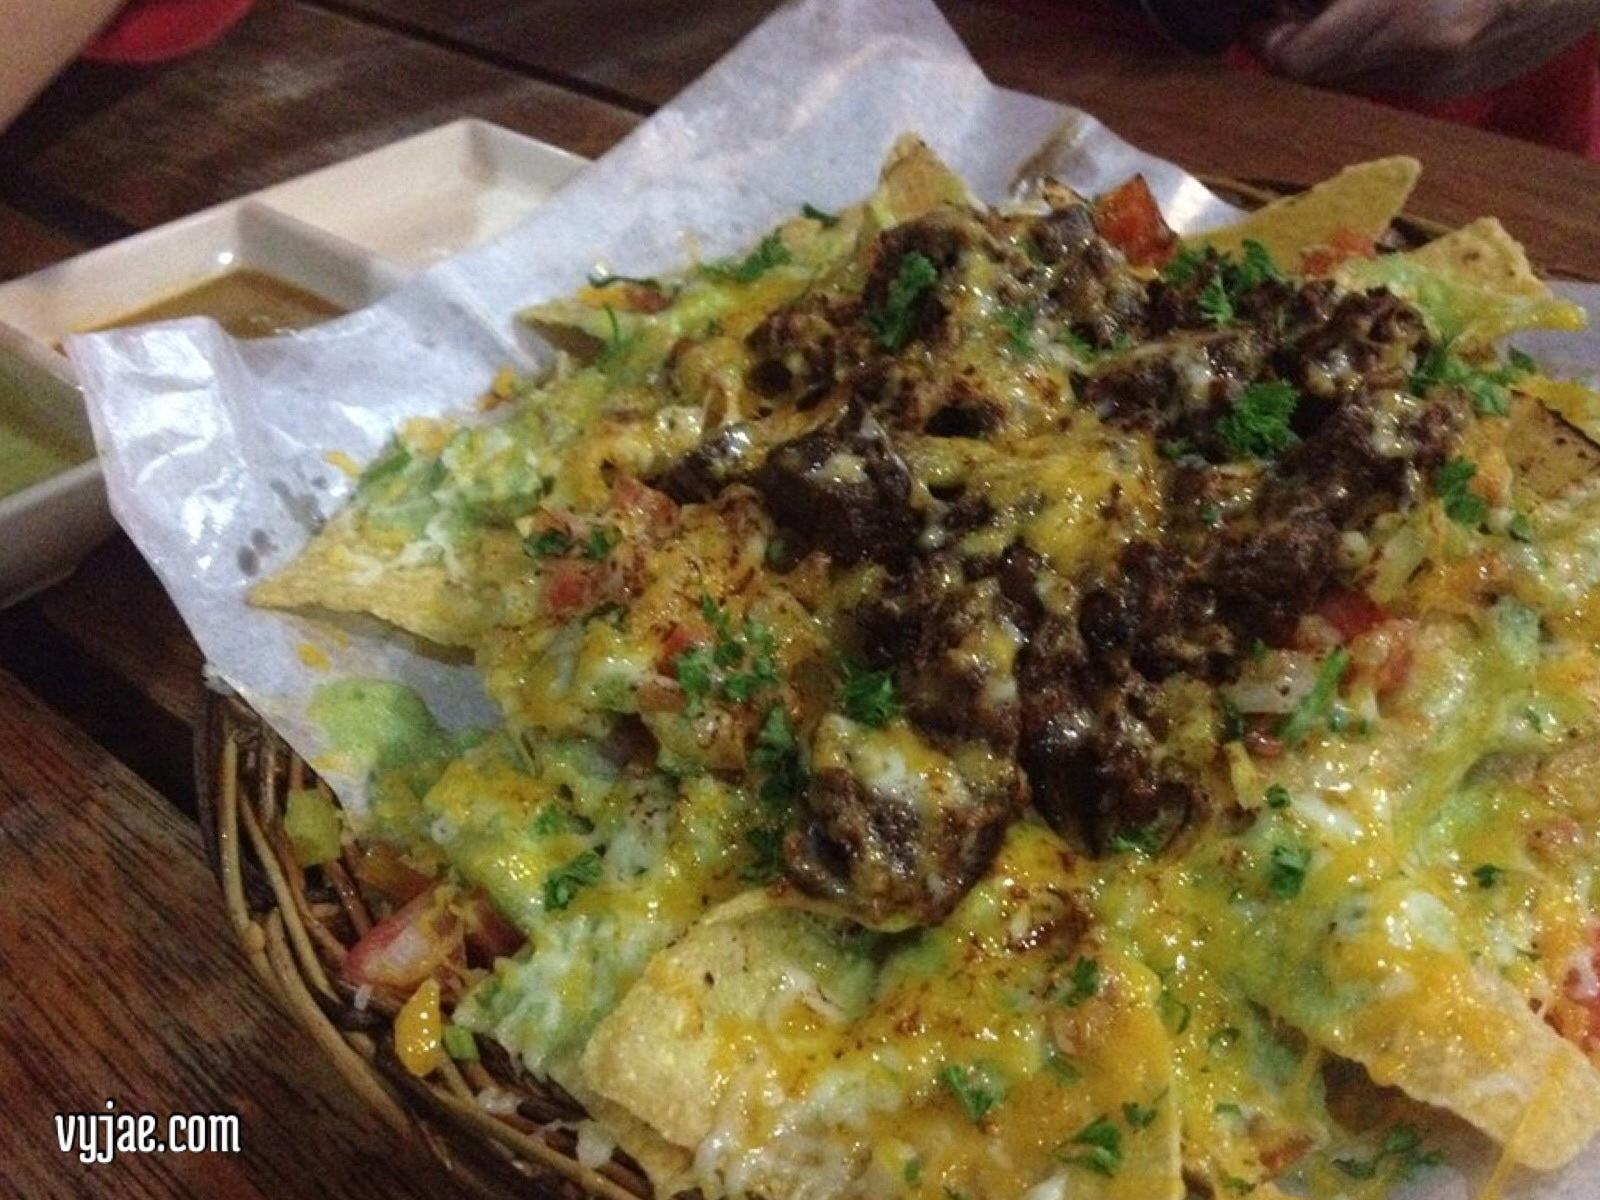 The best beef nachos in town... a must try!